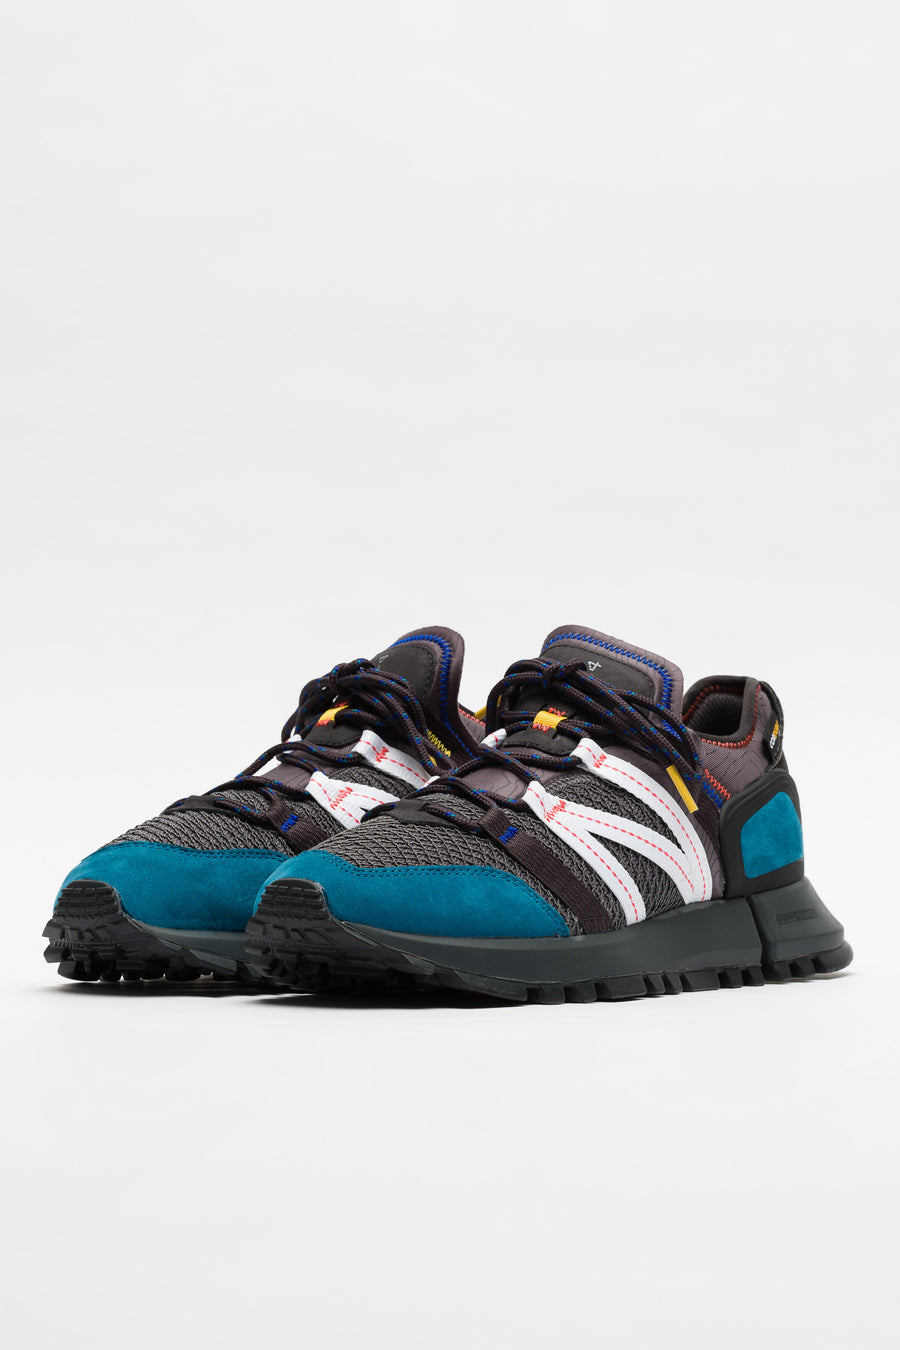 New Balance MSRC4LA in Aqua/Grey - Notre